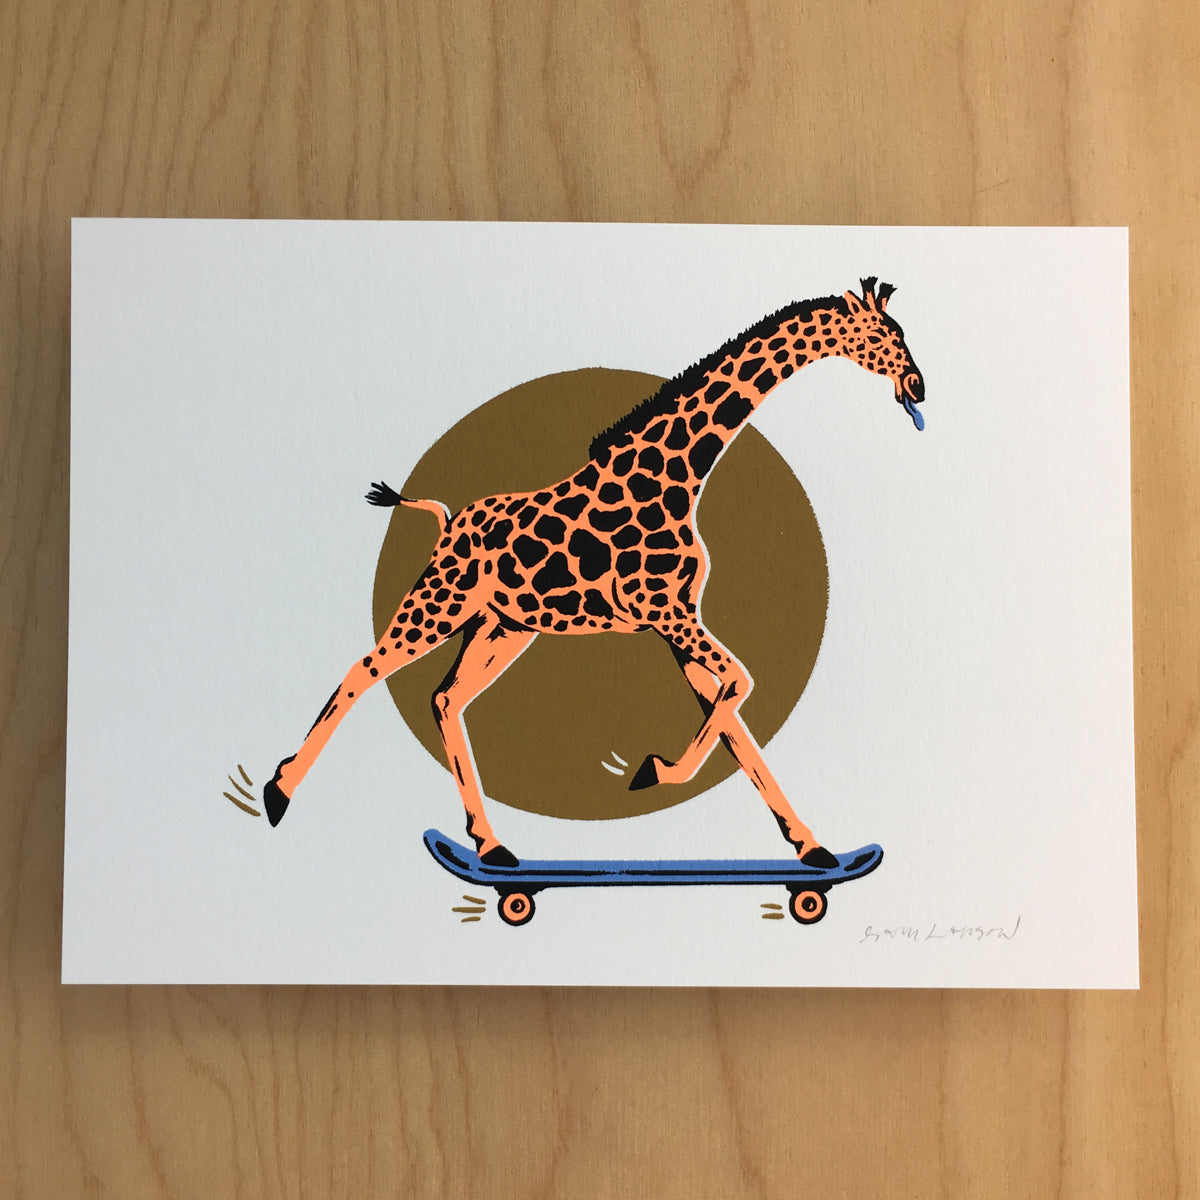 West Coast Giraffe - Signed Print #171